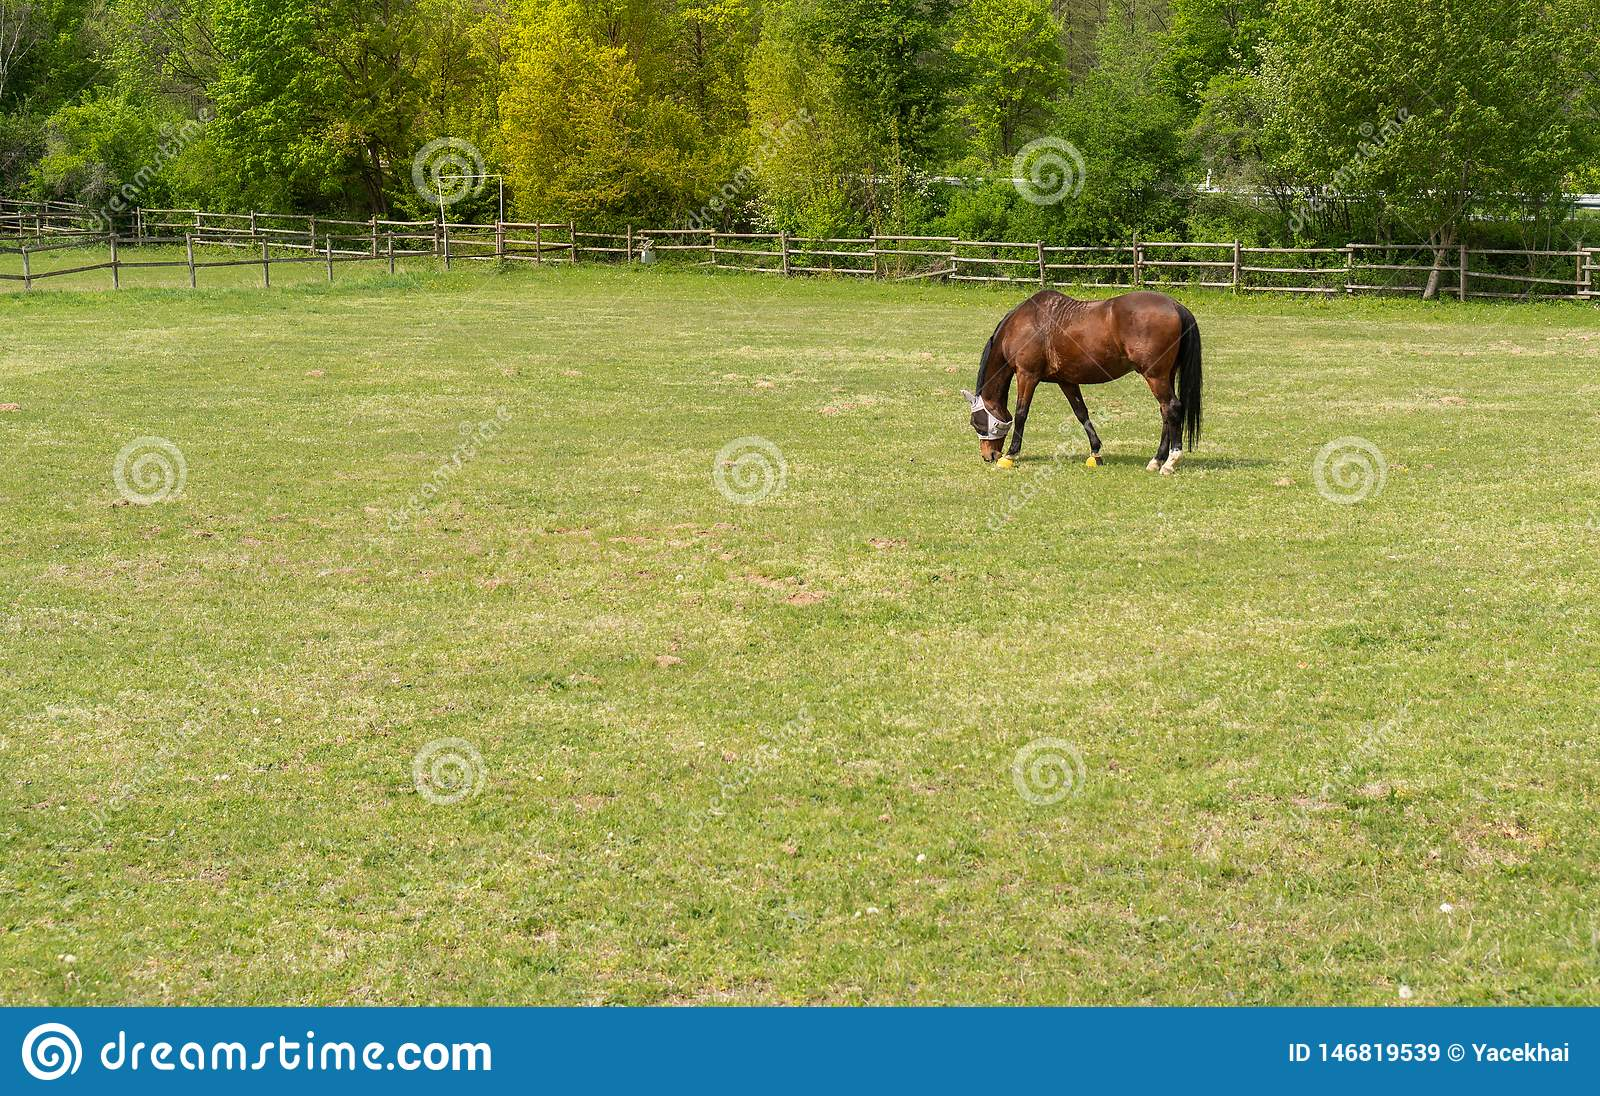 A beautiful horse in the pasture. Catwalk for horses.